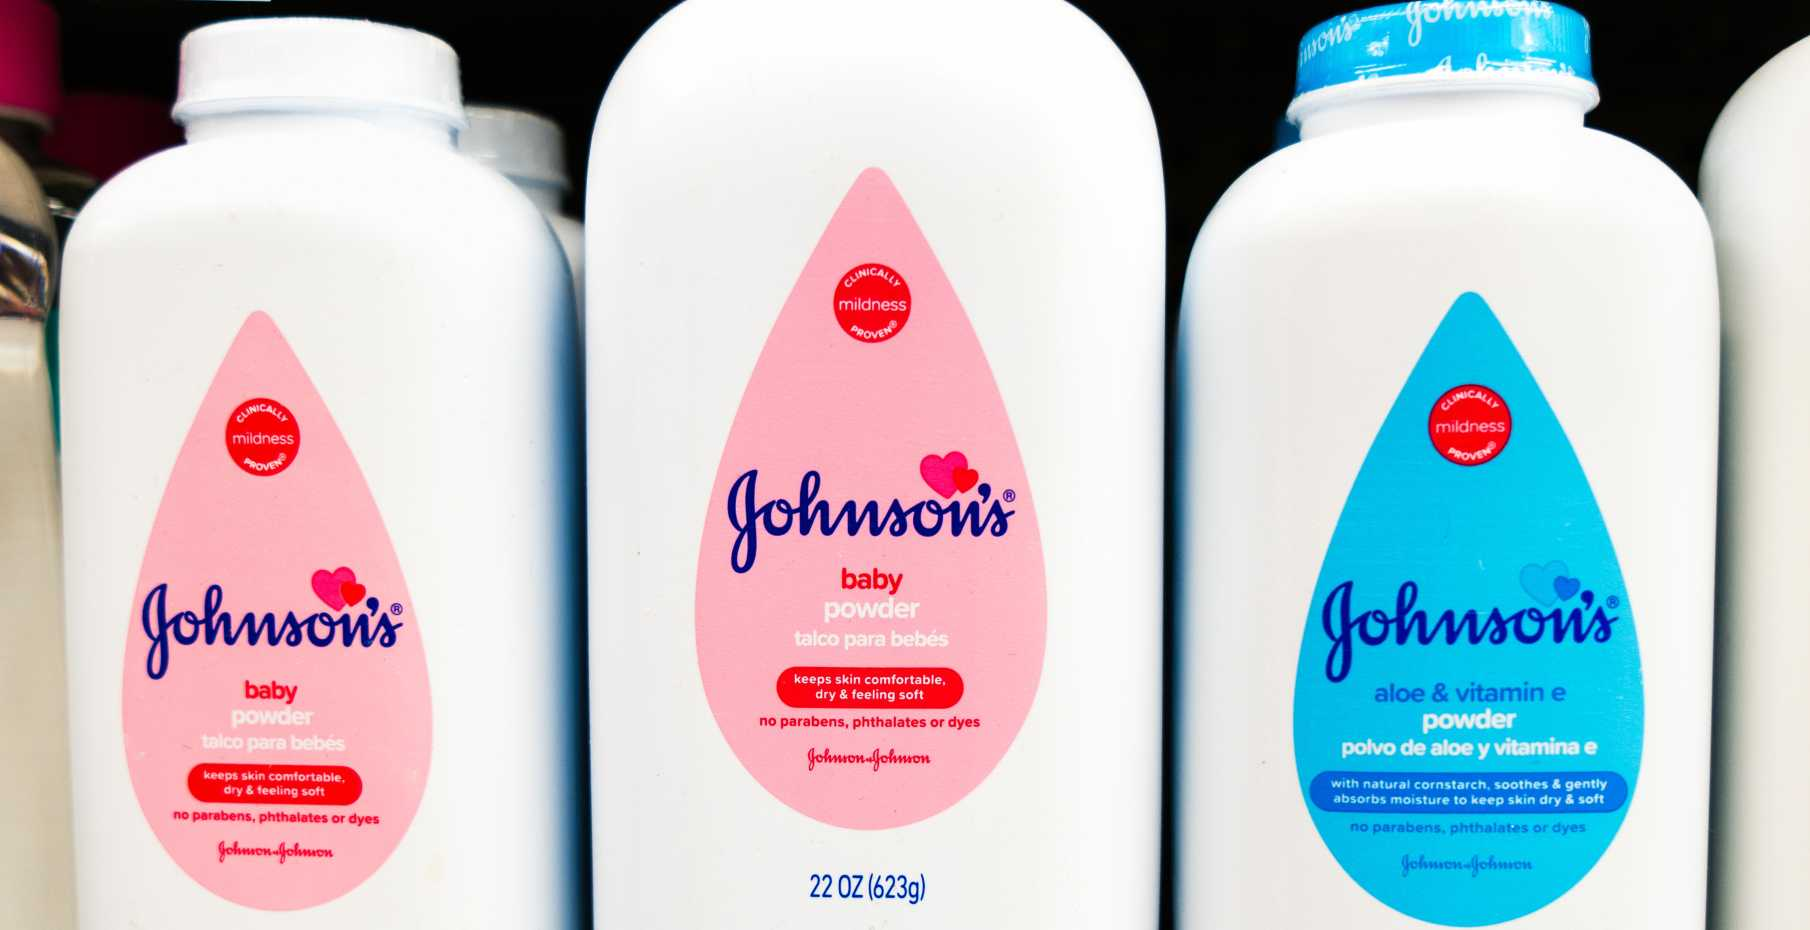 Johnson & Johnson has agreed to pay over $100 million to resolve more than 1,000 talcum powder lawsuits that alleged that J&J's talcum powder caused cancer to develop in consumers of the talcum powder.